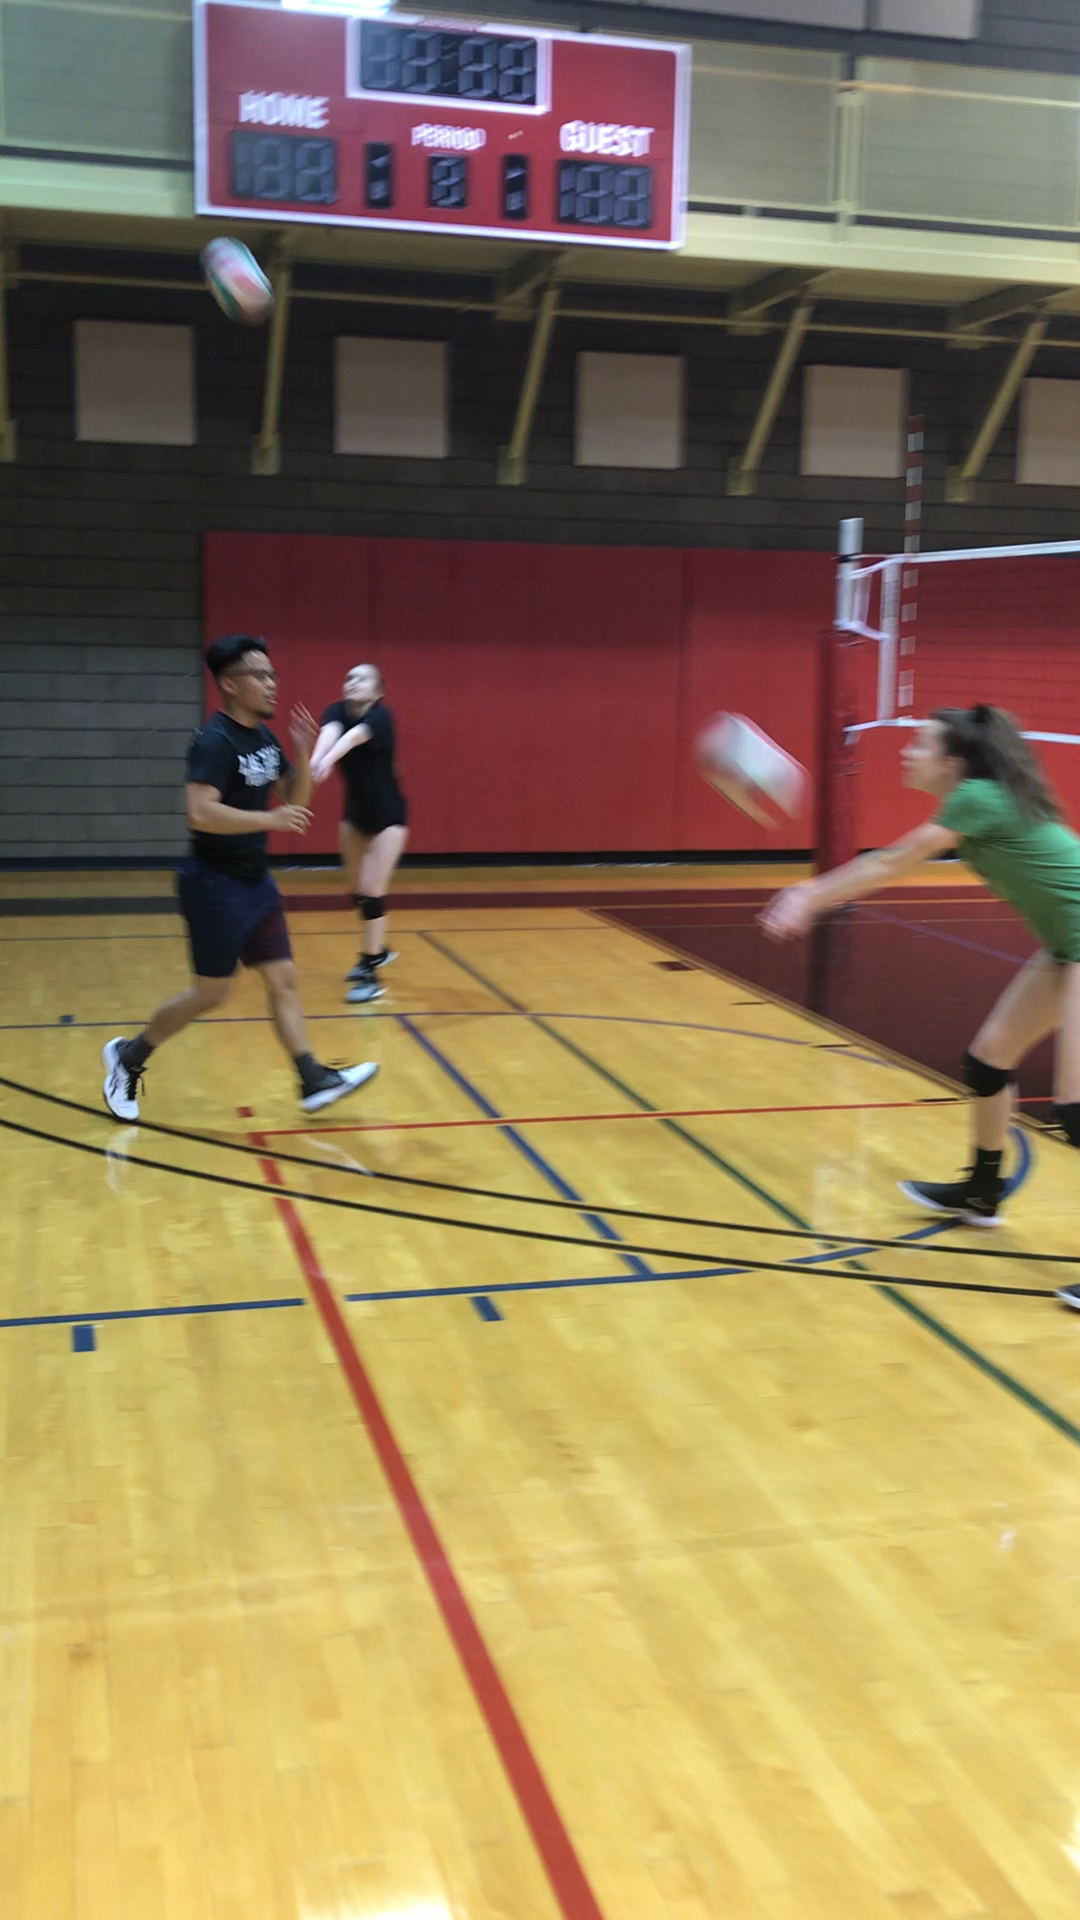 Best Volleyball Matches Volleyball Ball Control Drills Five Person Passing Drill Try Combining In 2020 Volleyball Training Volleyball Workouts Volleyball Practice